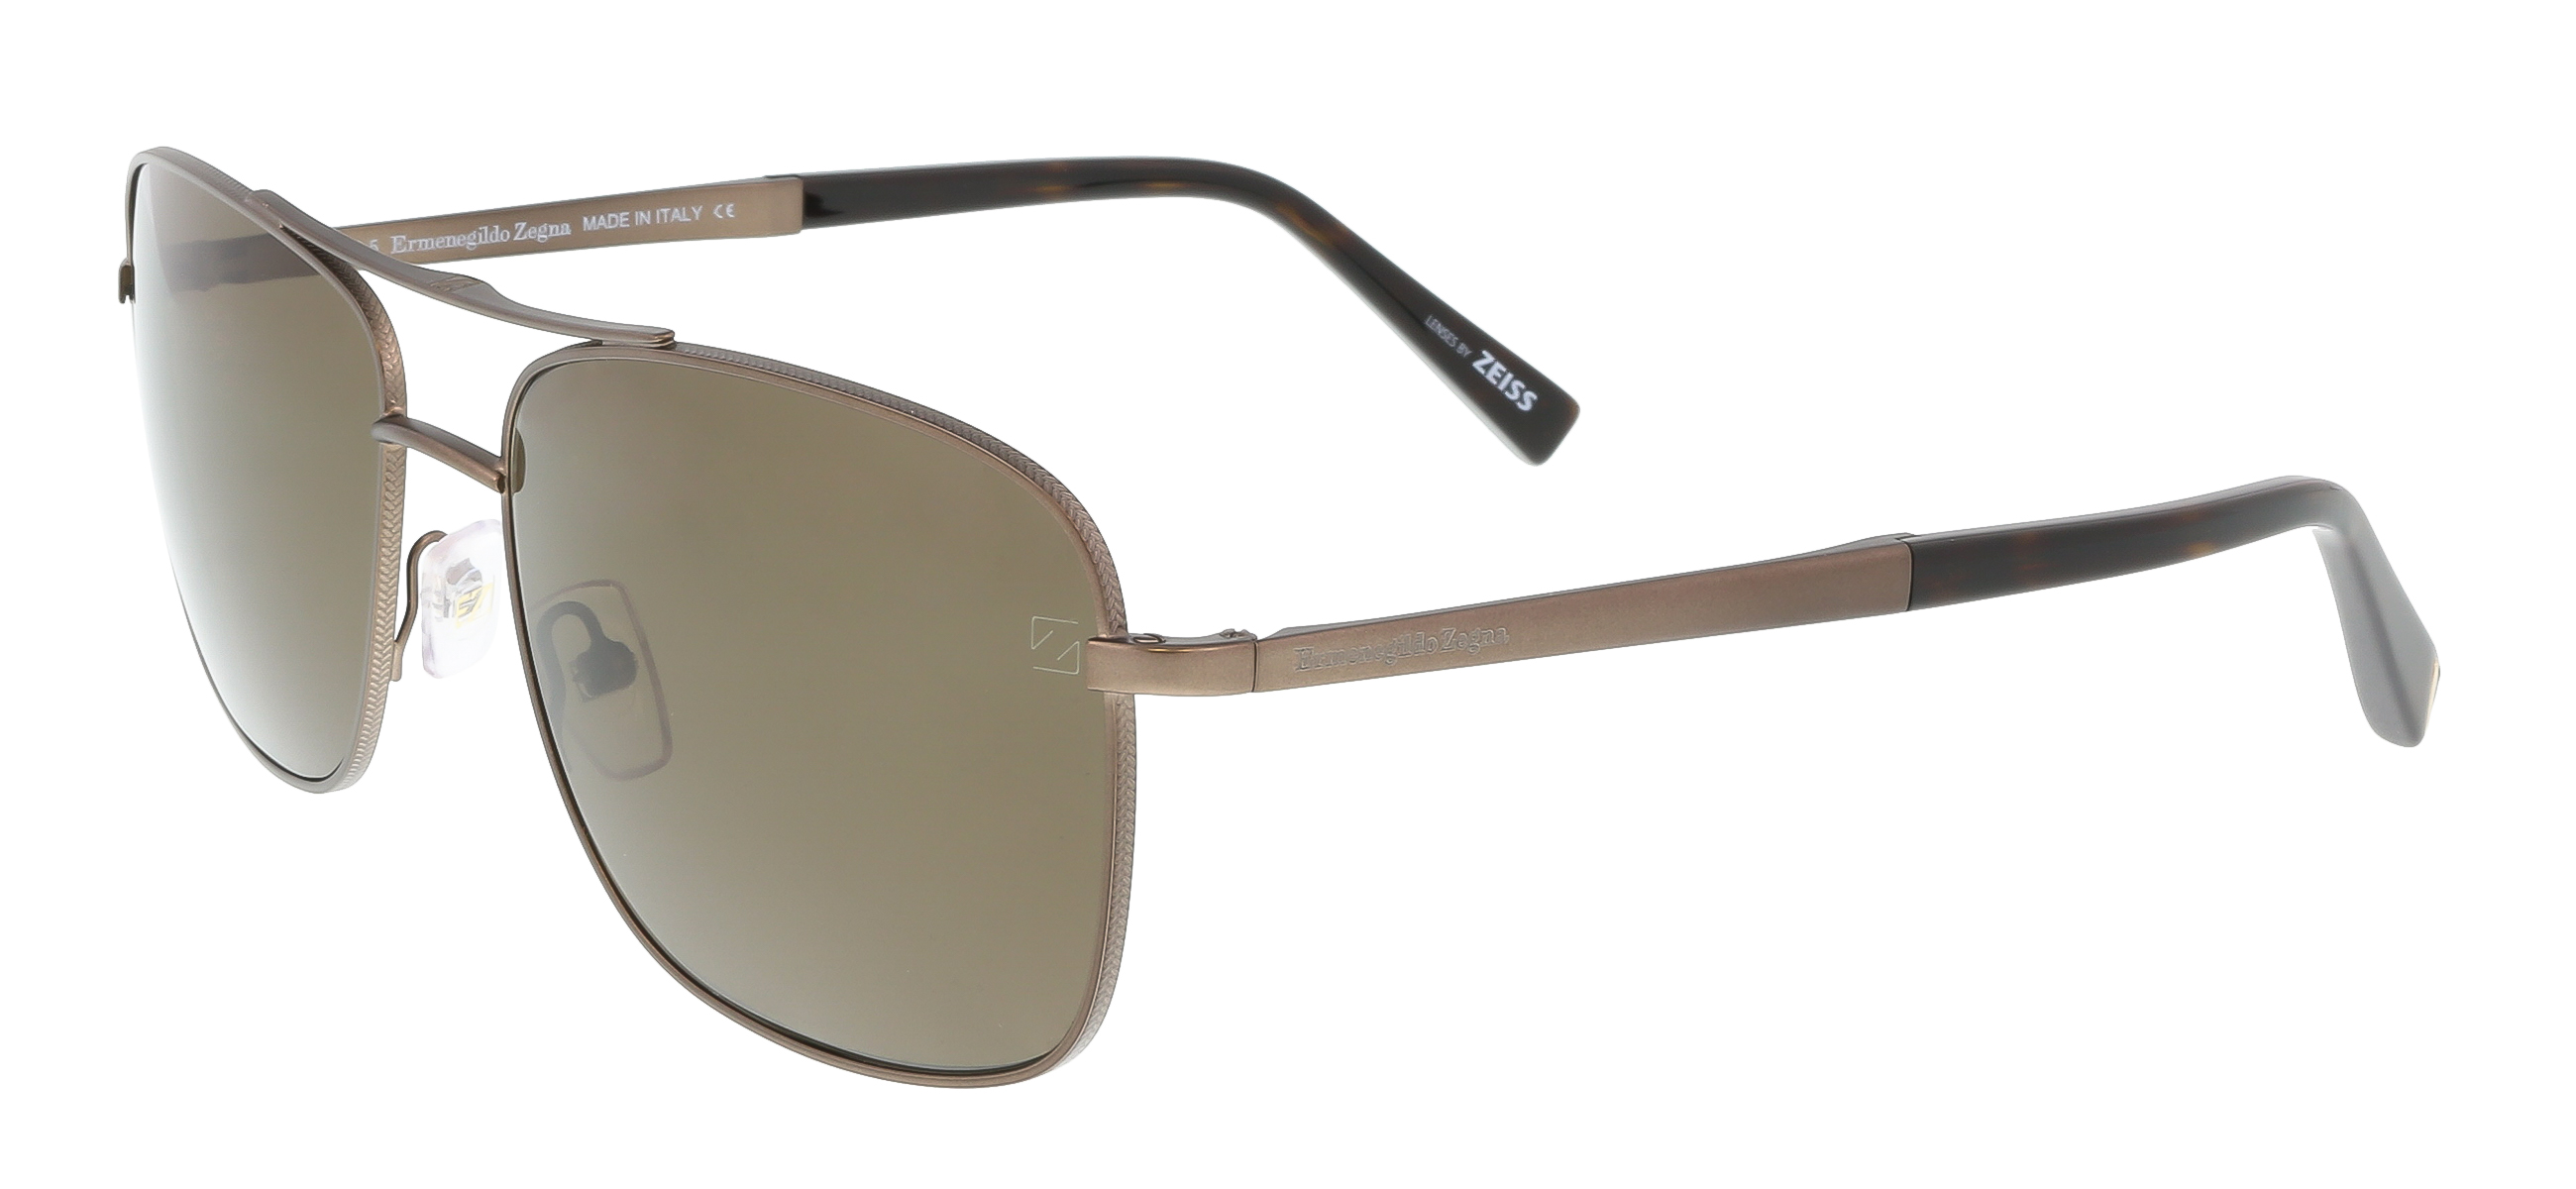 EZ0021 37M Bronze Aviator Feline Sunglasses